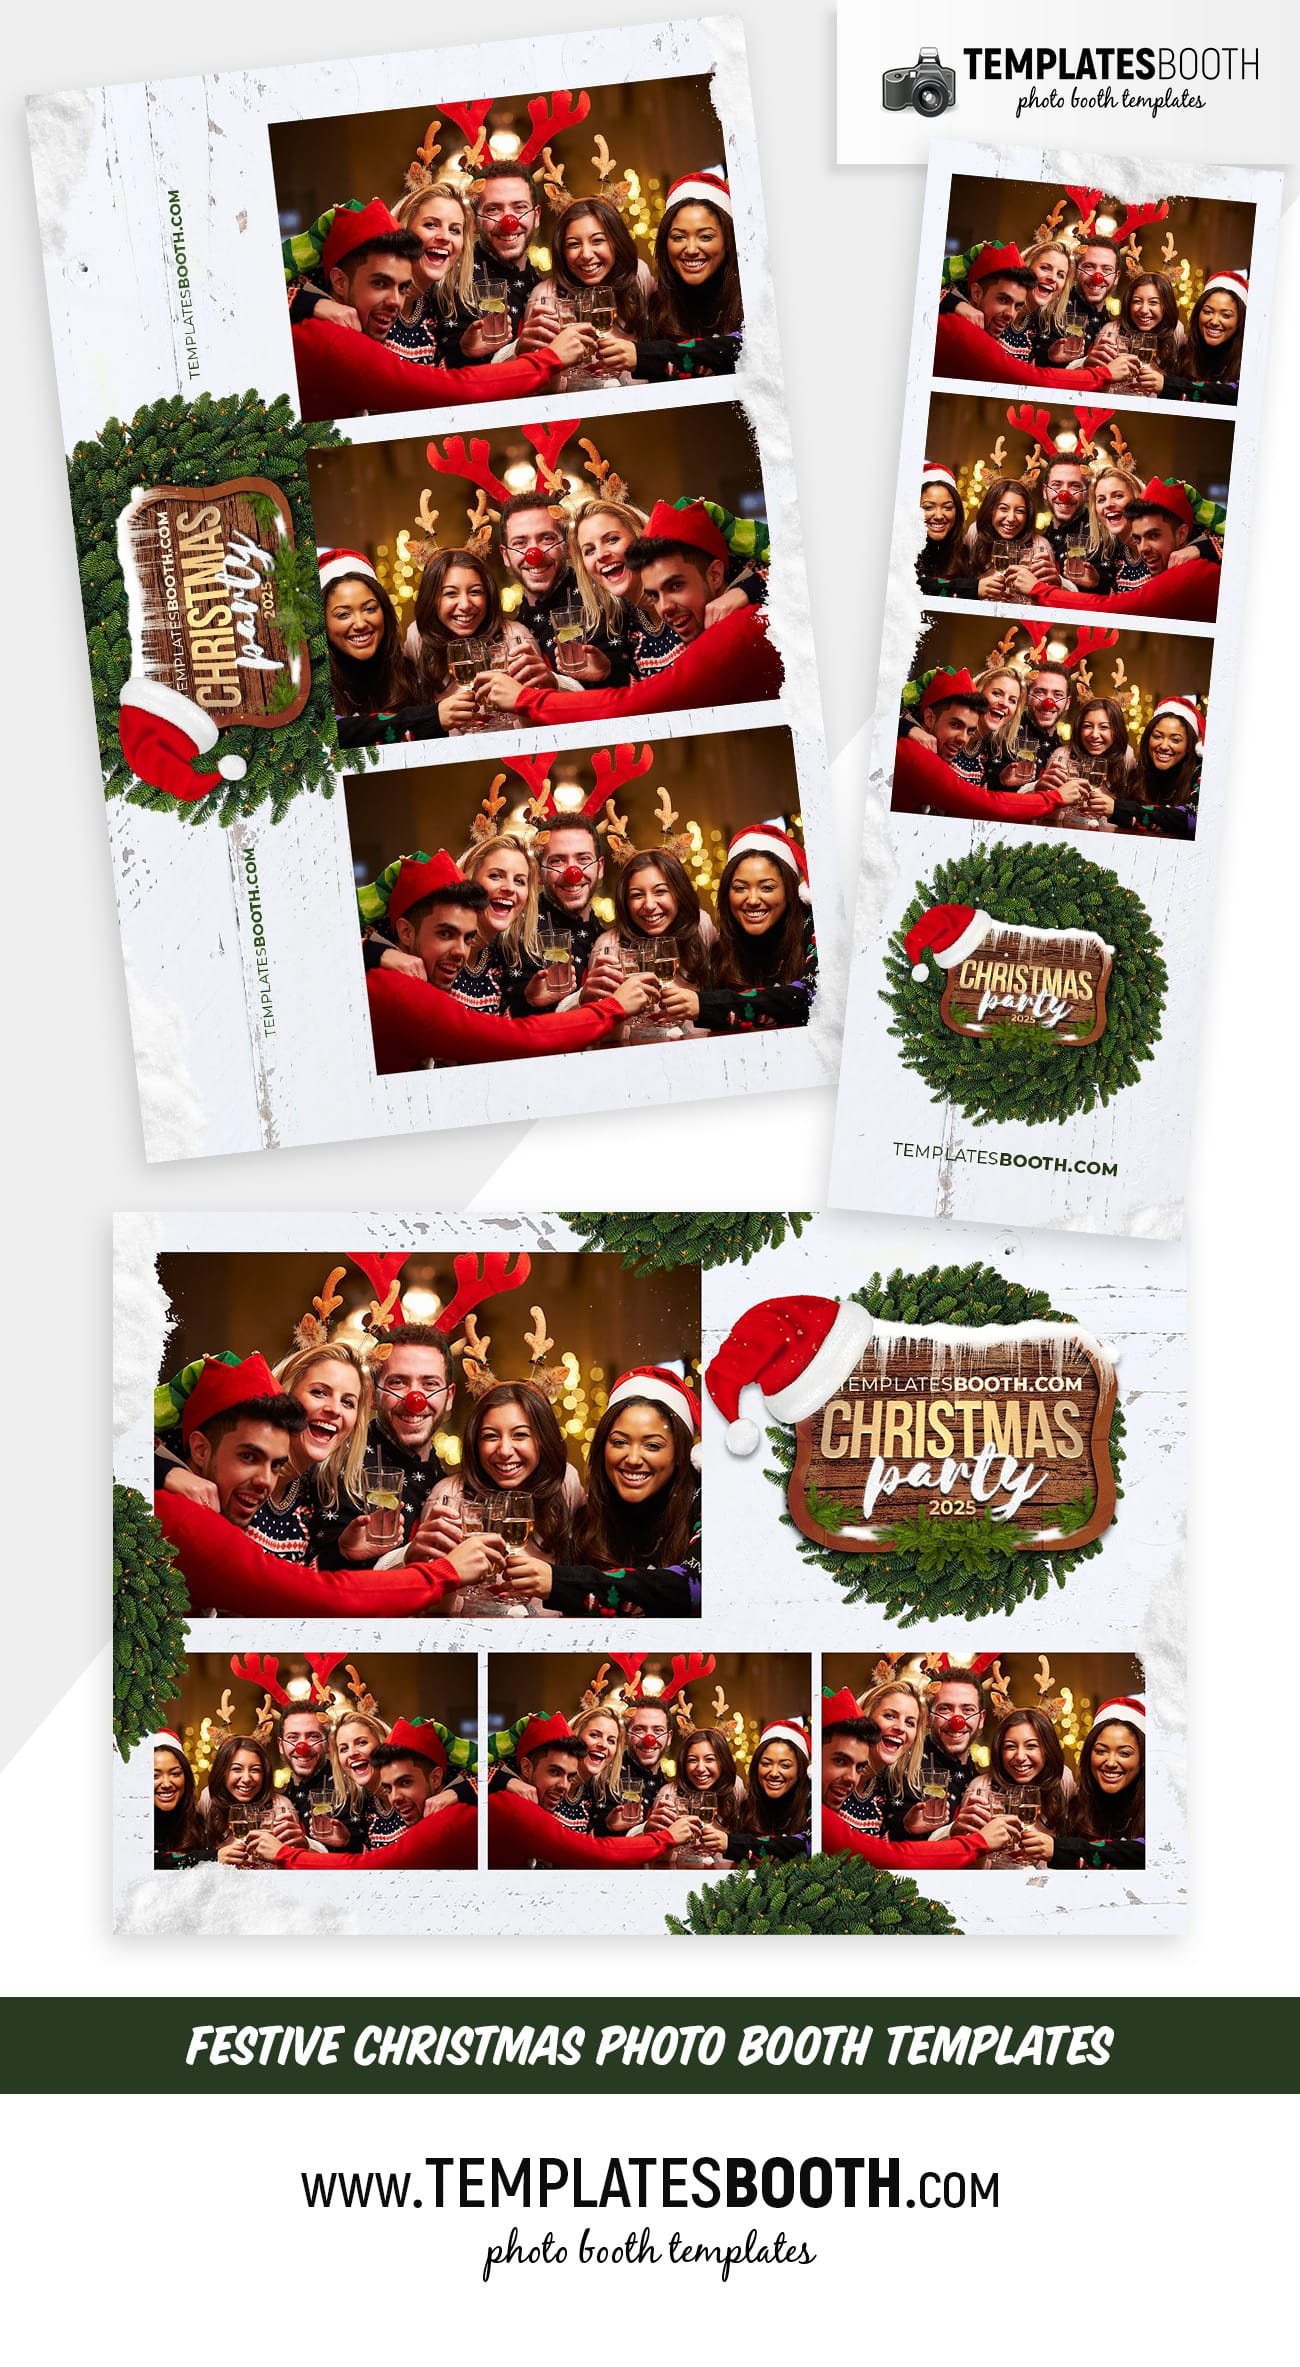 Festive Christmas Photo Booth Templates